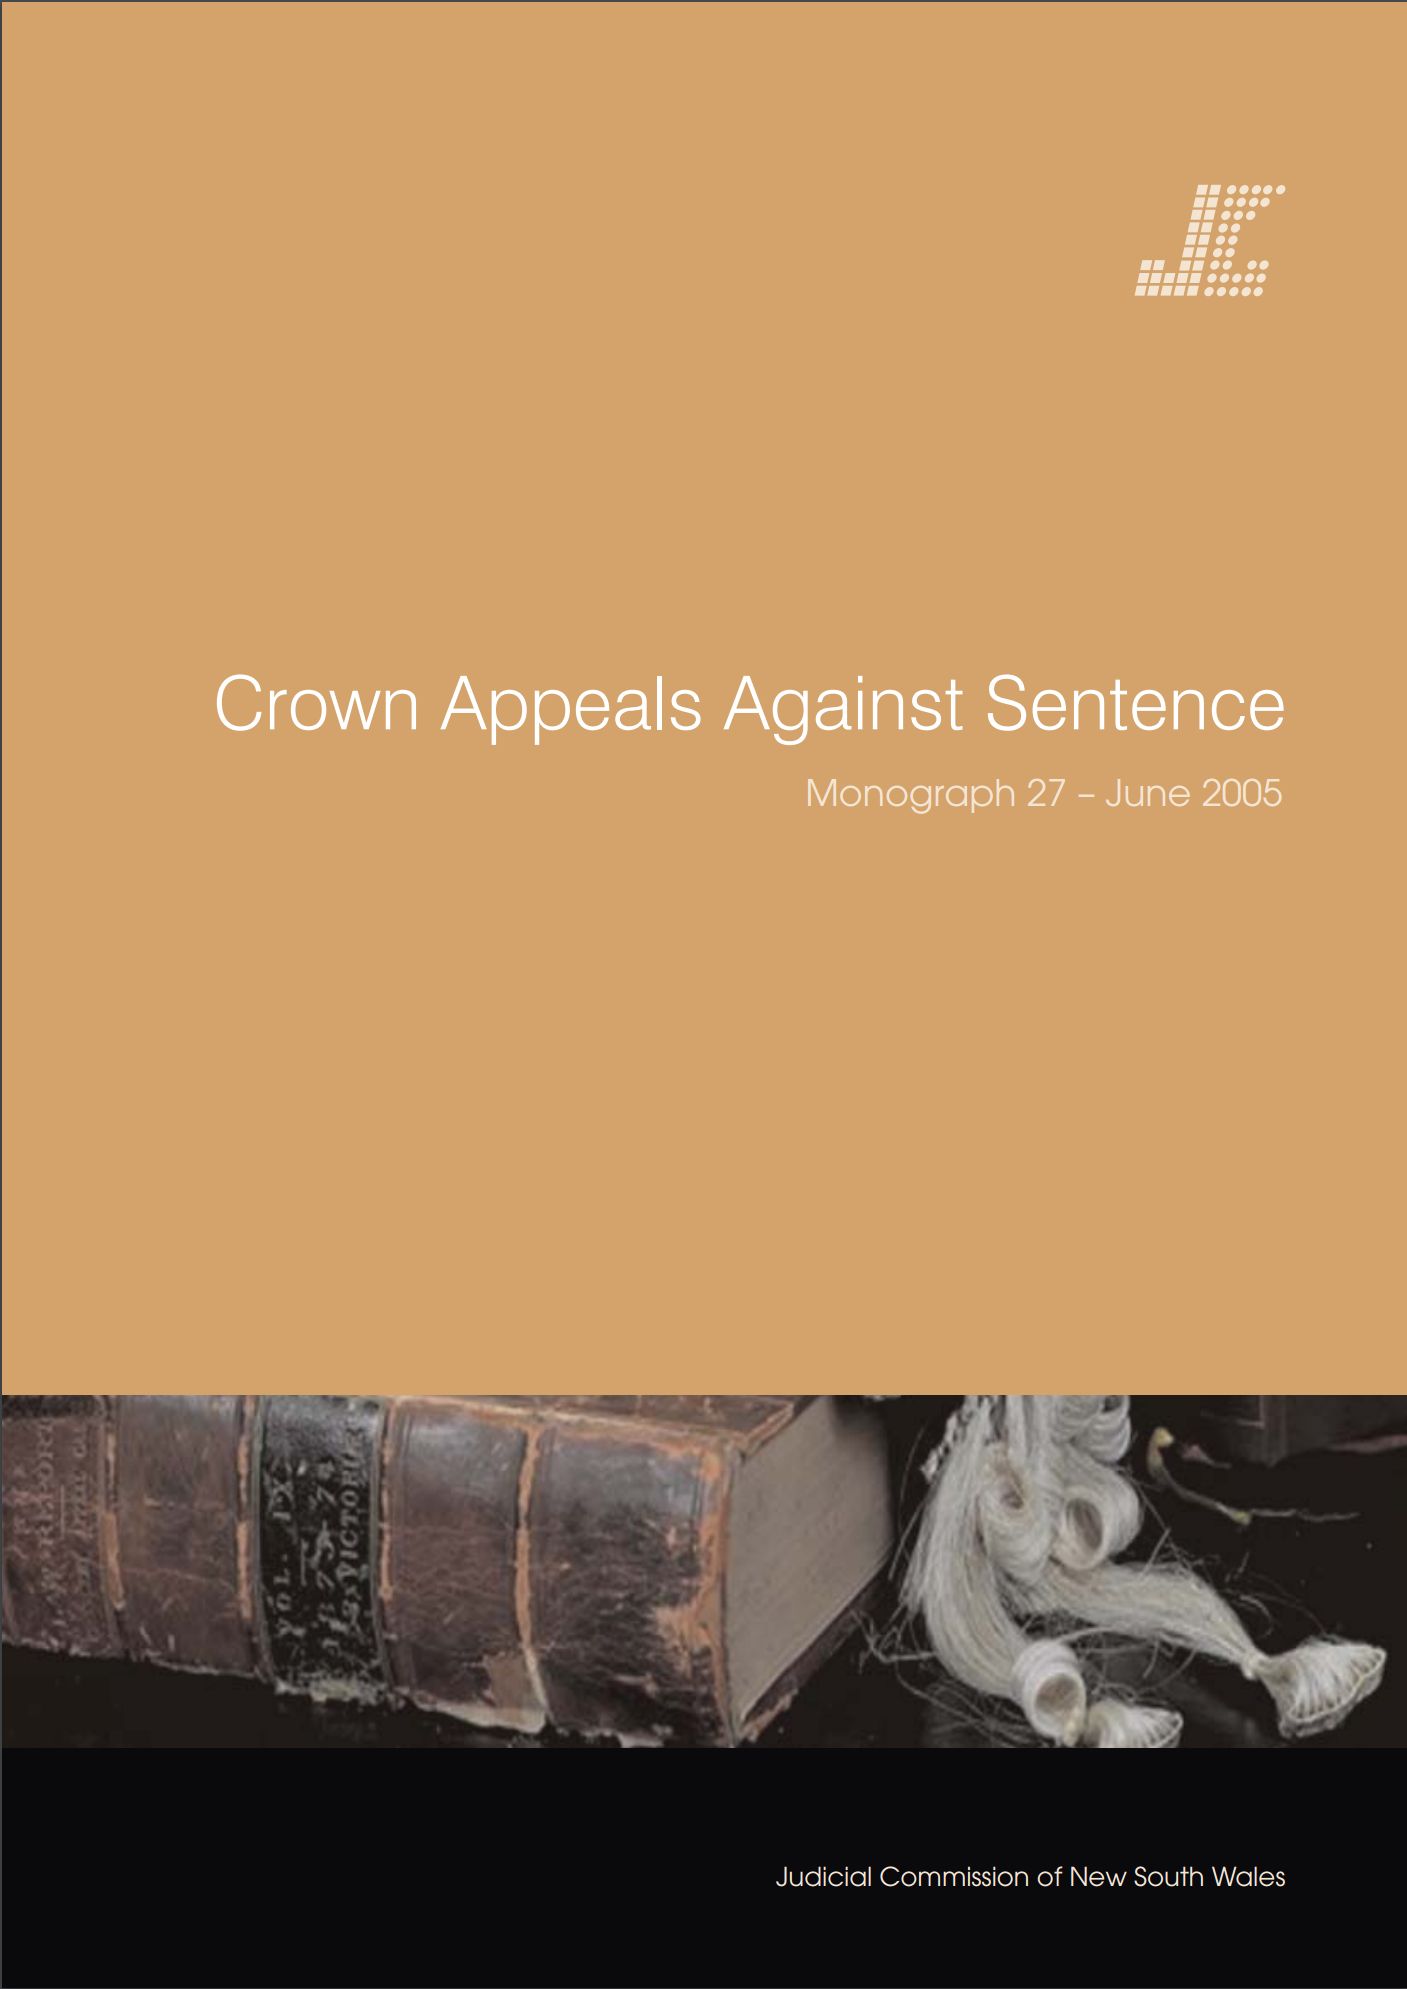 Research Monograph 27 Cover - Crown Appeals Against Sentence